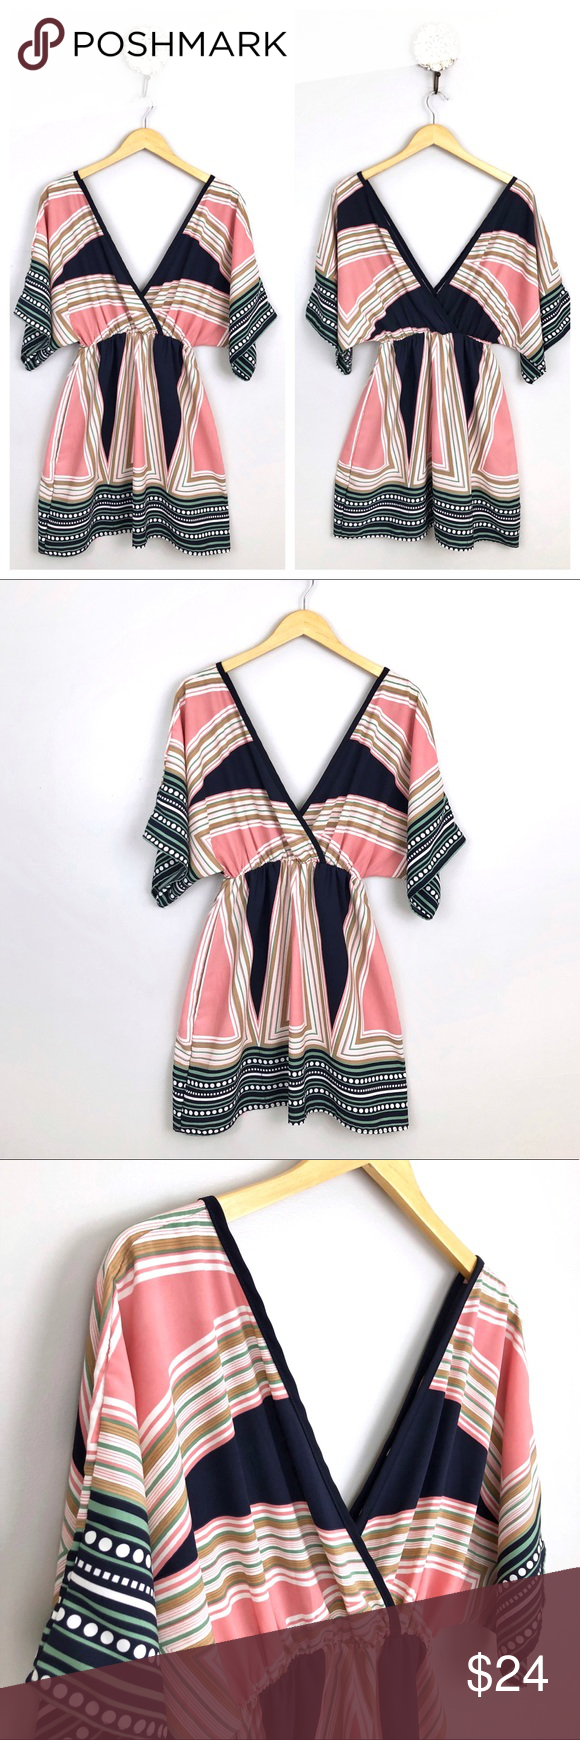 NWT Sage Kimono Dress From Apricot Lane Boutique New with